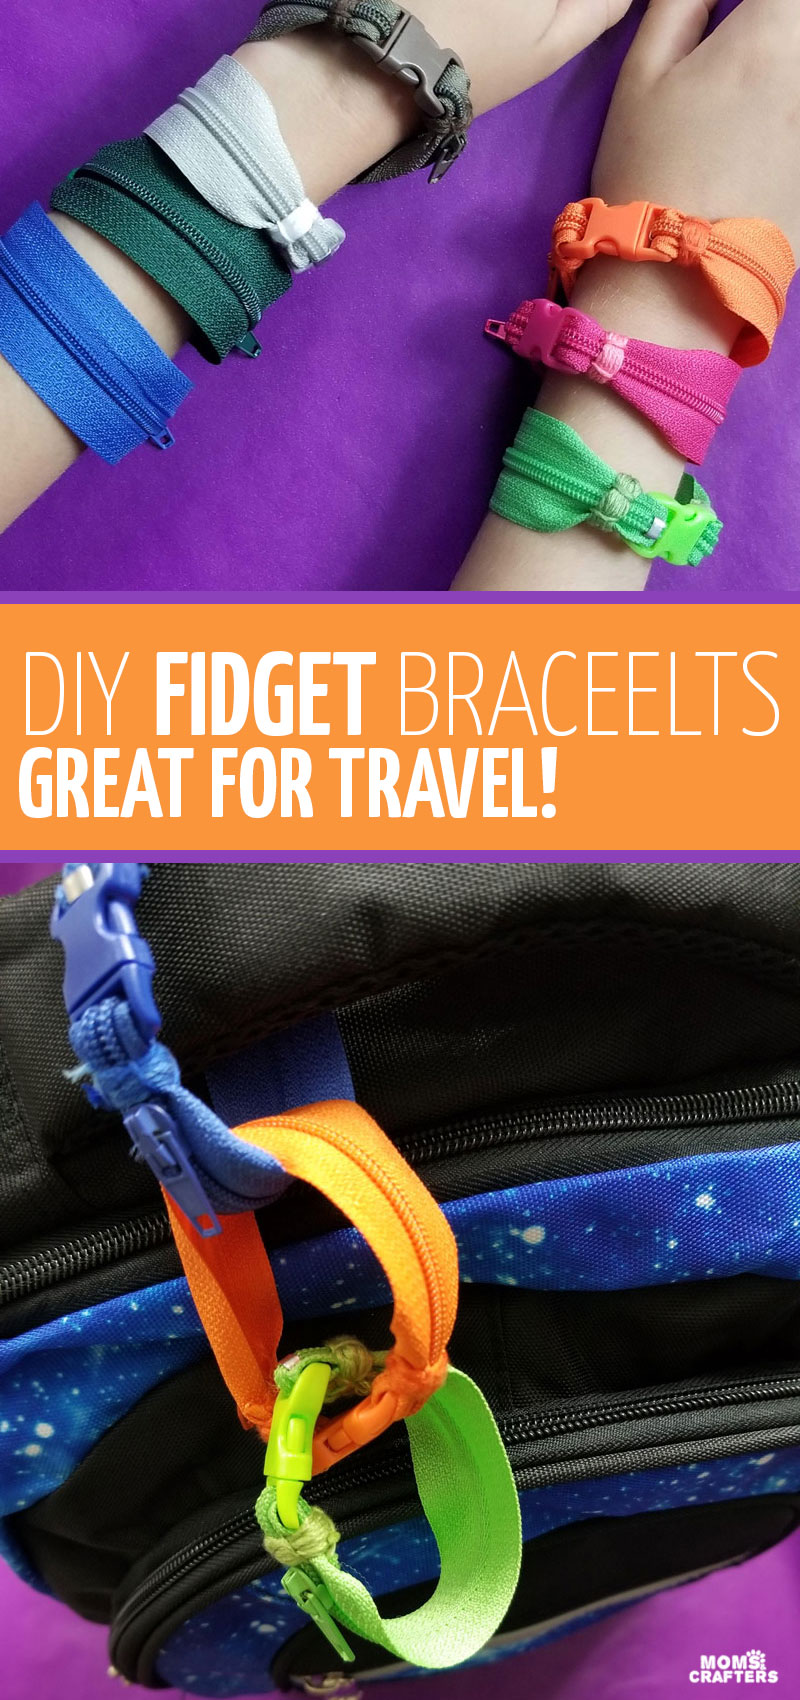 Click to learn how to make a zipper bracelet - an easy jewelry making project for kids and a fun fidget toy.